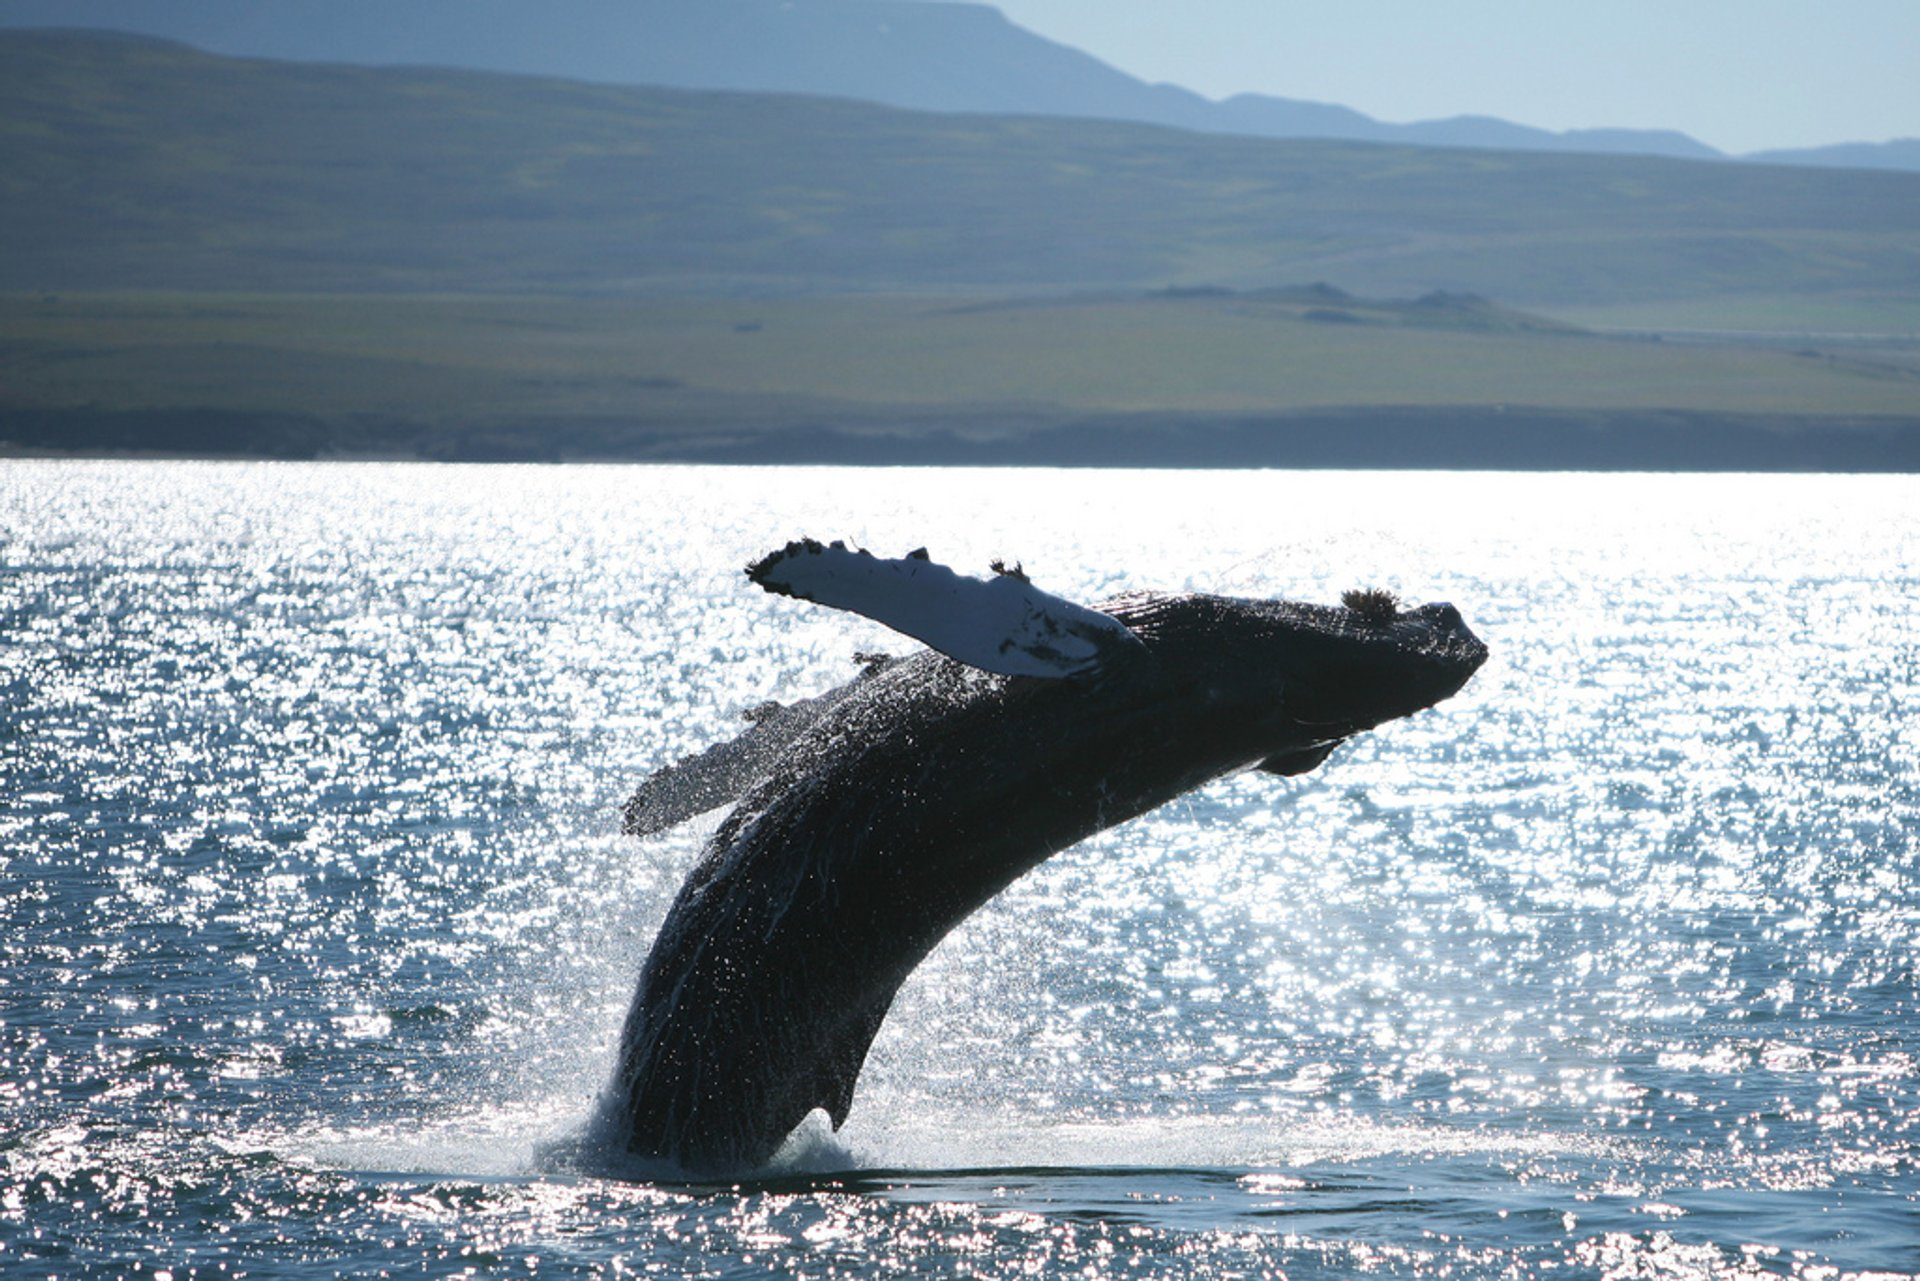 Best time to see Whale Watching in Iceland 2020